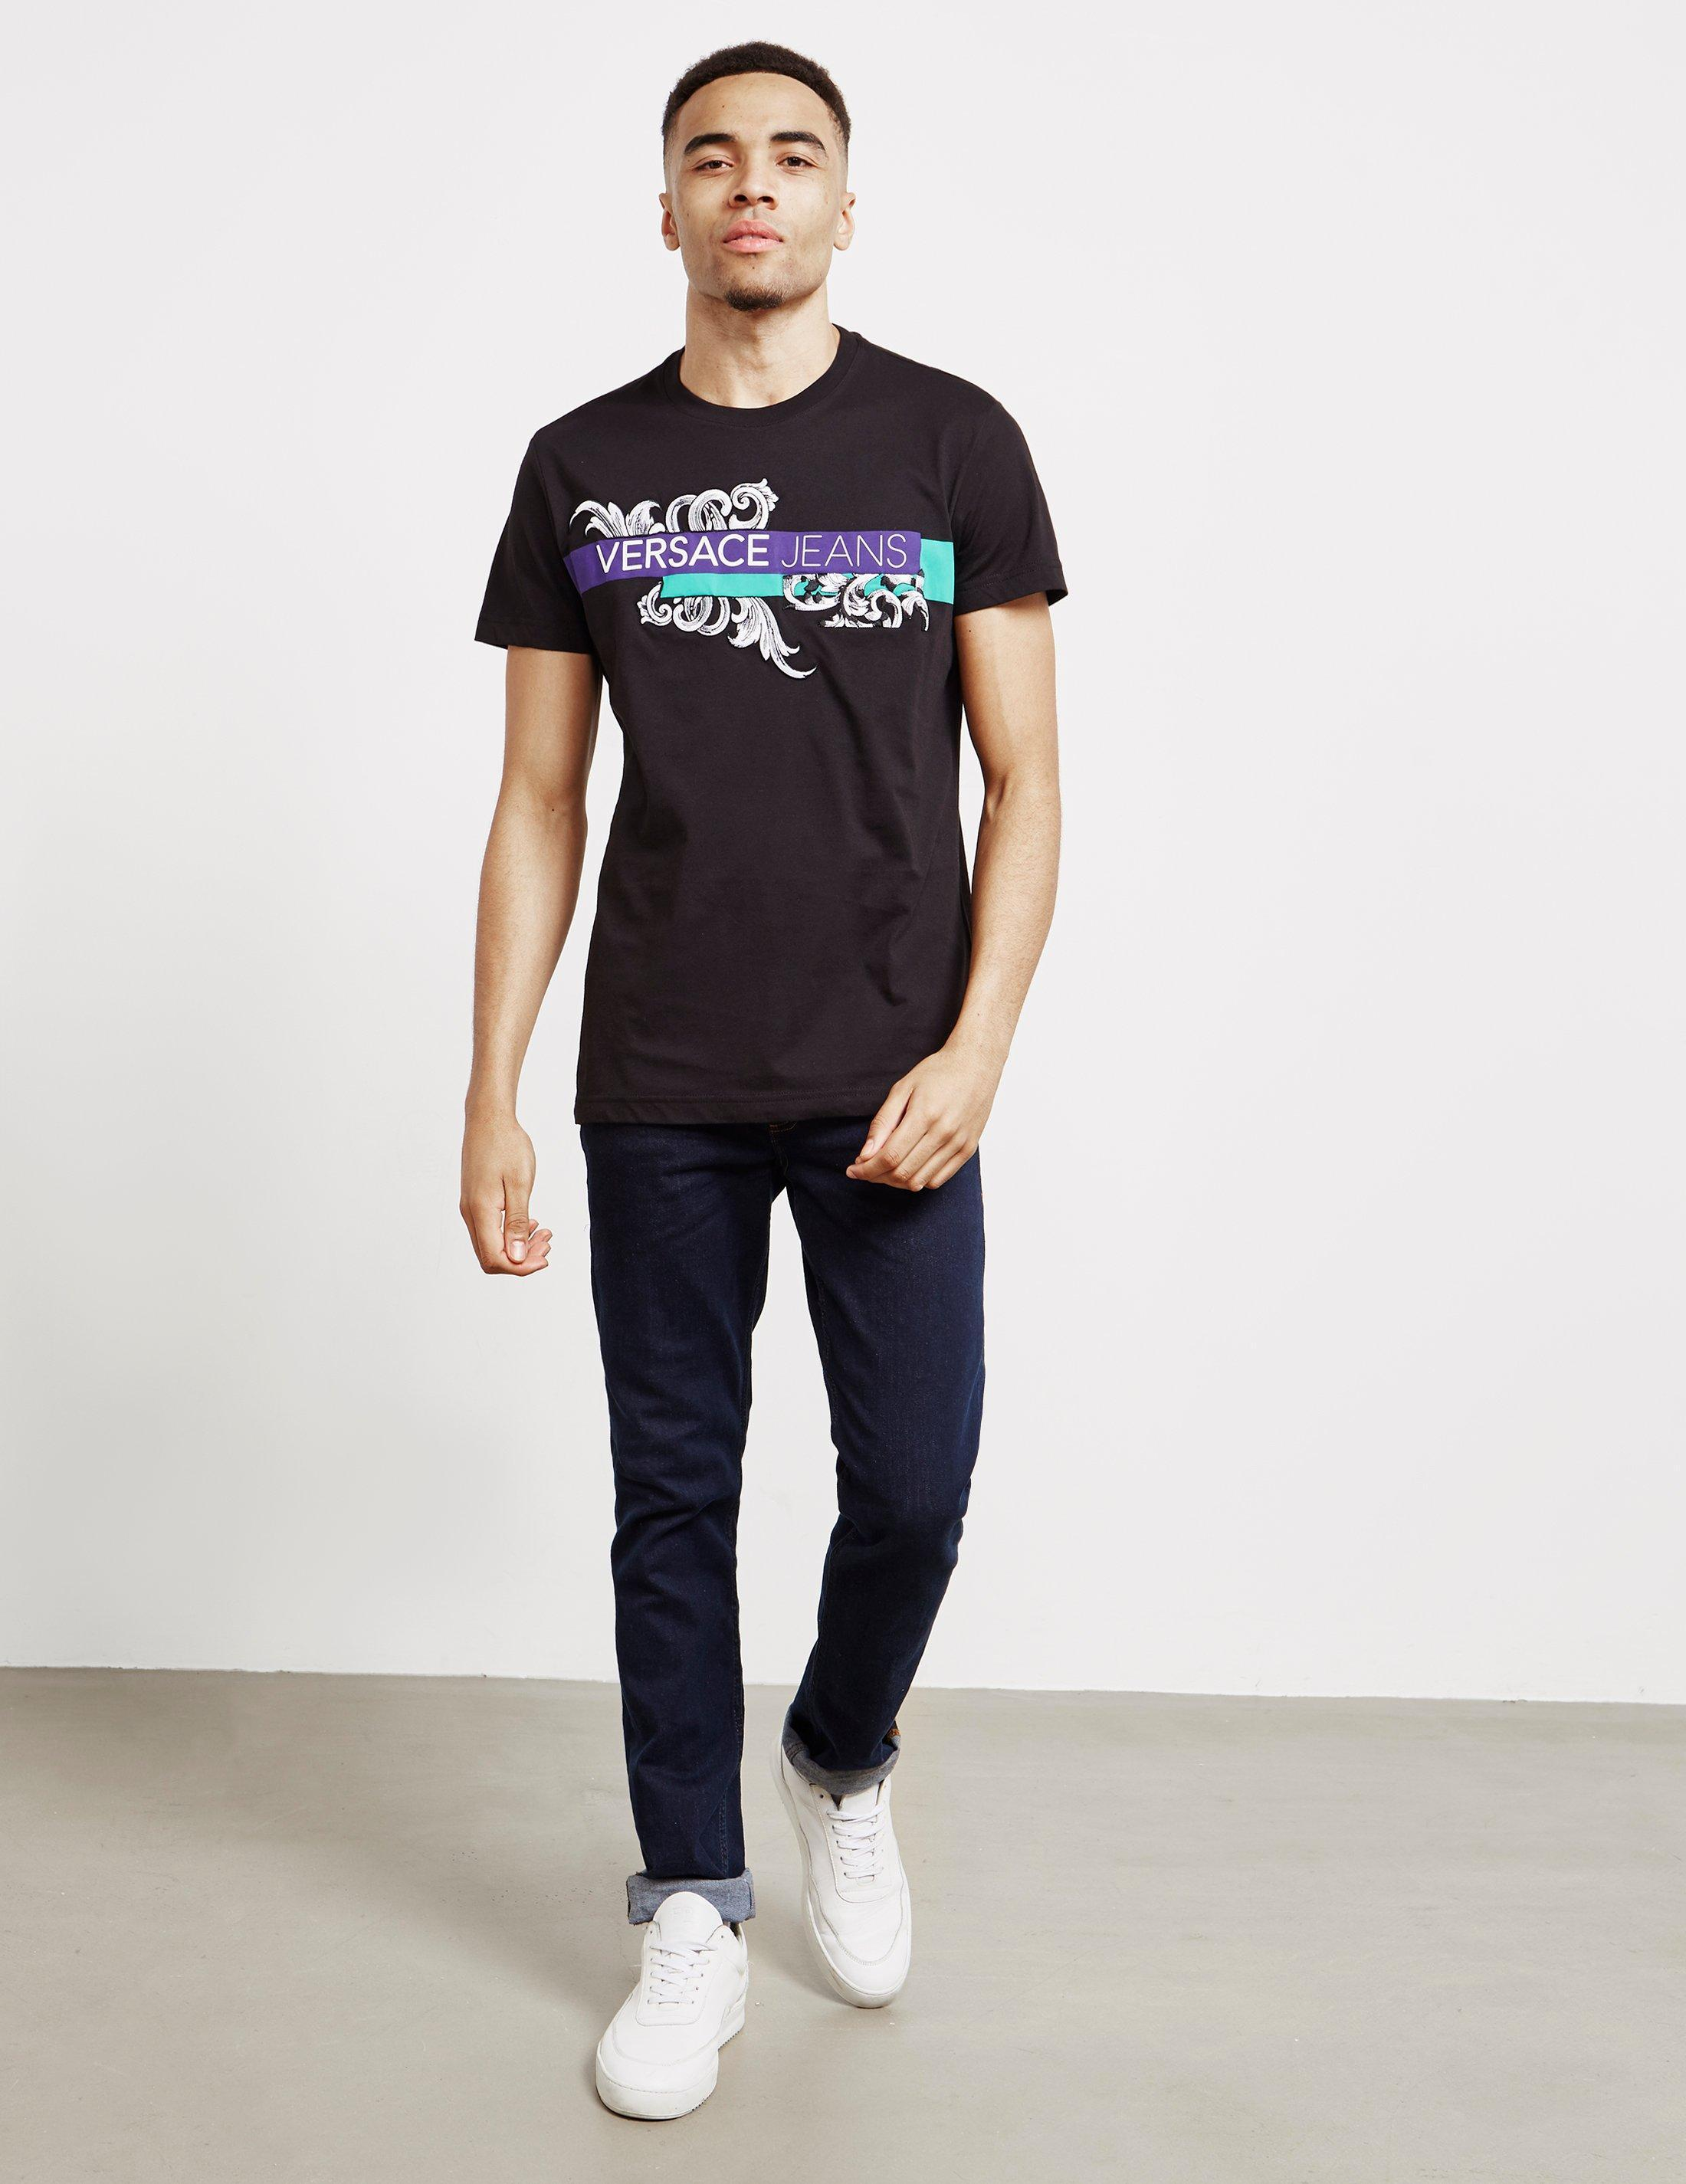 5899b53e Lyst - Versace Jeans Mens Baroque Logo Short Sleeve T-shirt Black in Black  for Men